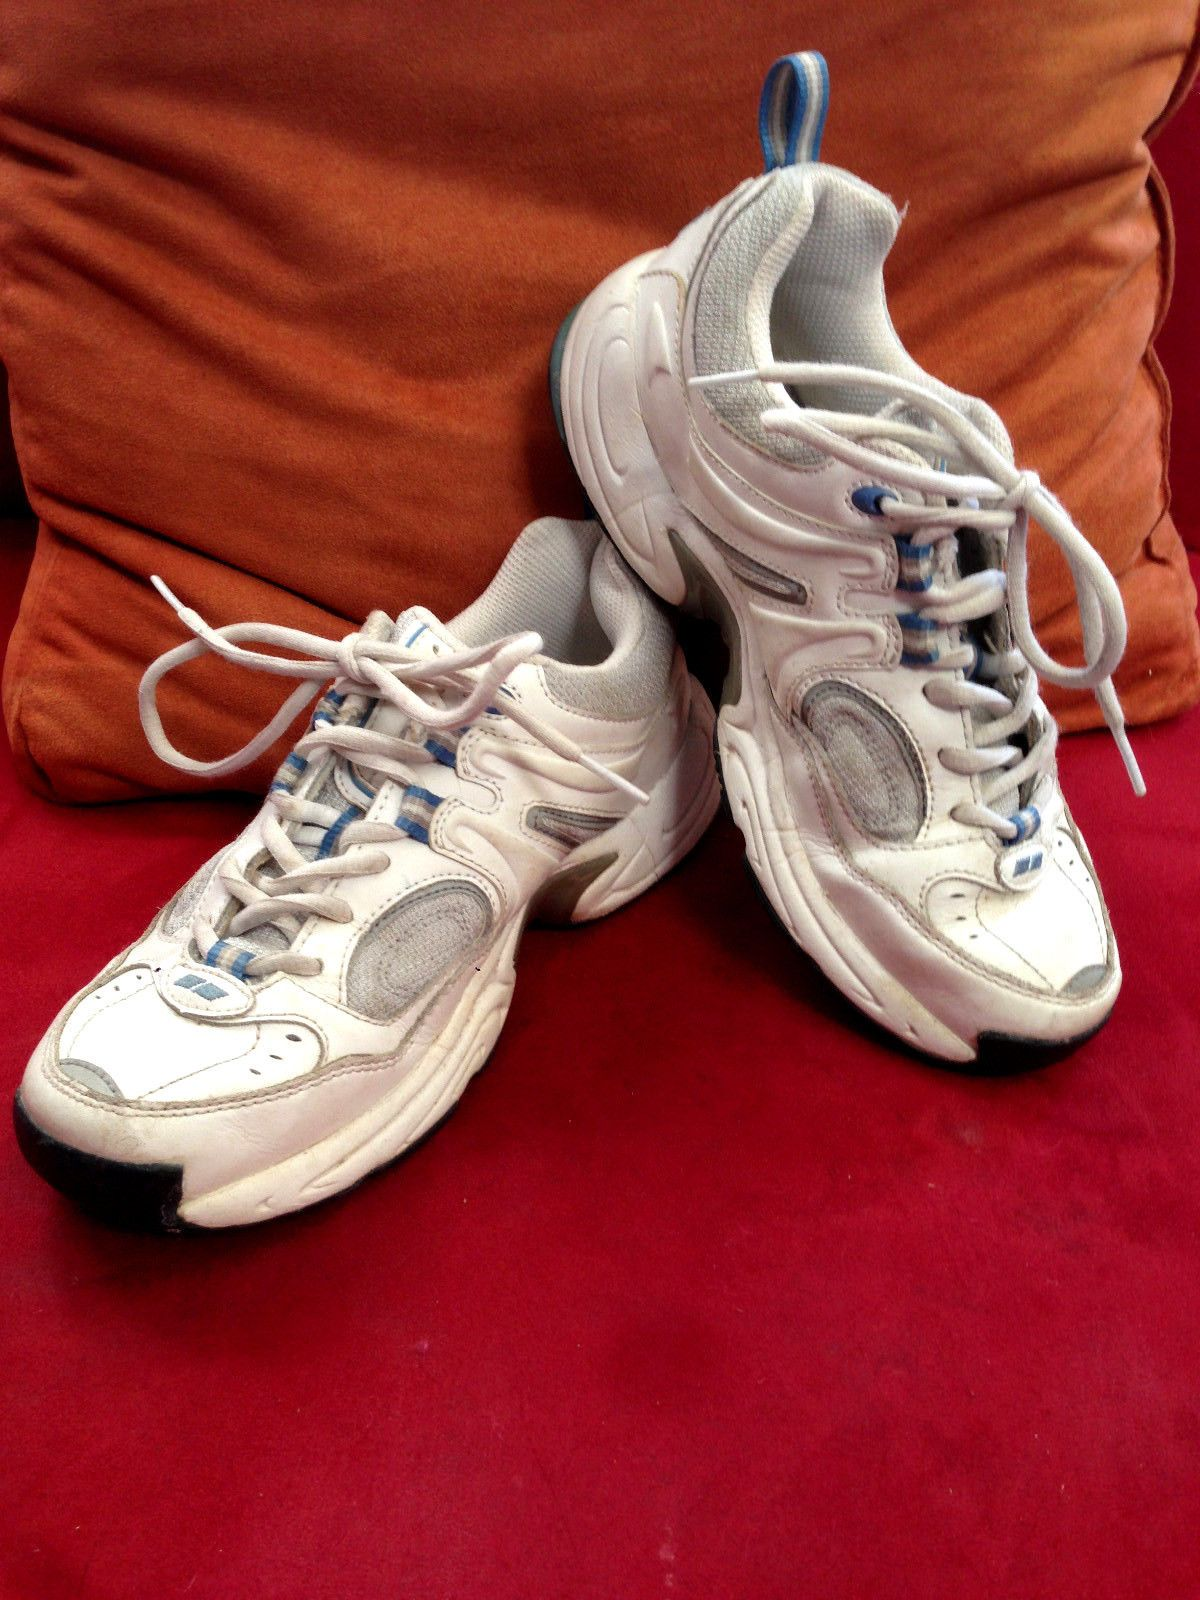 Size 6 Ryka Women's Running Shoes Cross Trainer White/Blue/Silver - Barely Worn https://t.co/ApBxvgRFx1 https://t.co/sDQphNNoPz